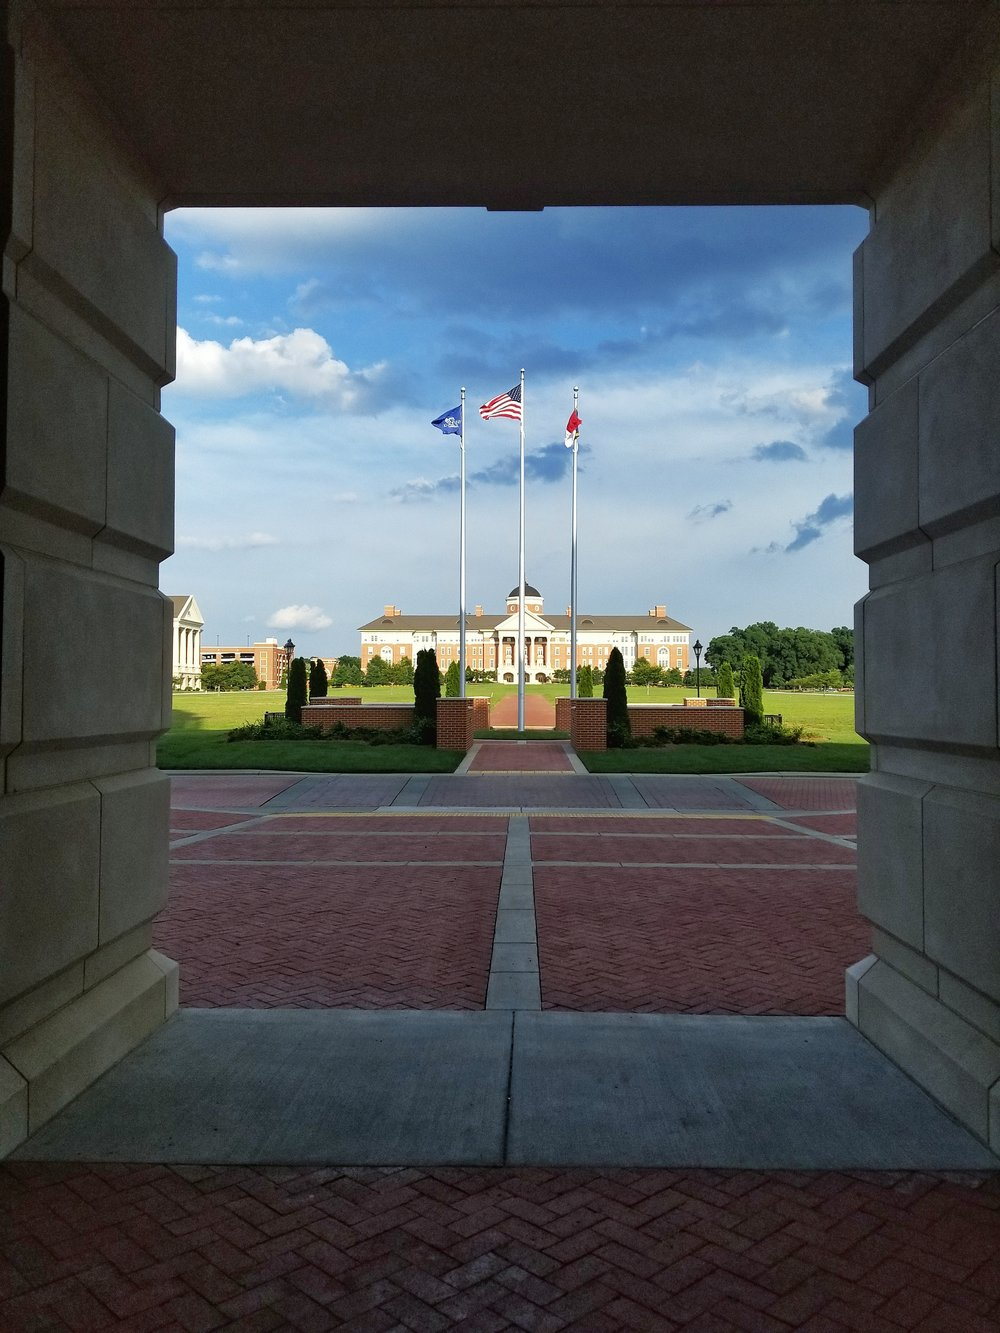 A view from the doorway of city hall in Kannapolis, N.C. toward the rest of the N.C. Research Campus. Smartphone picture.